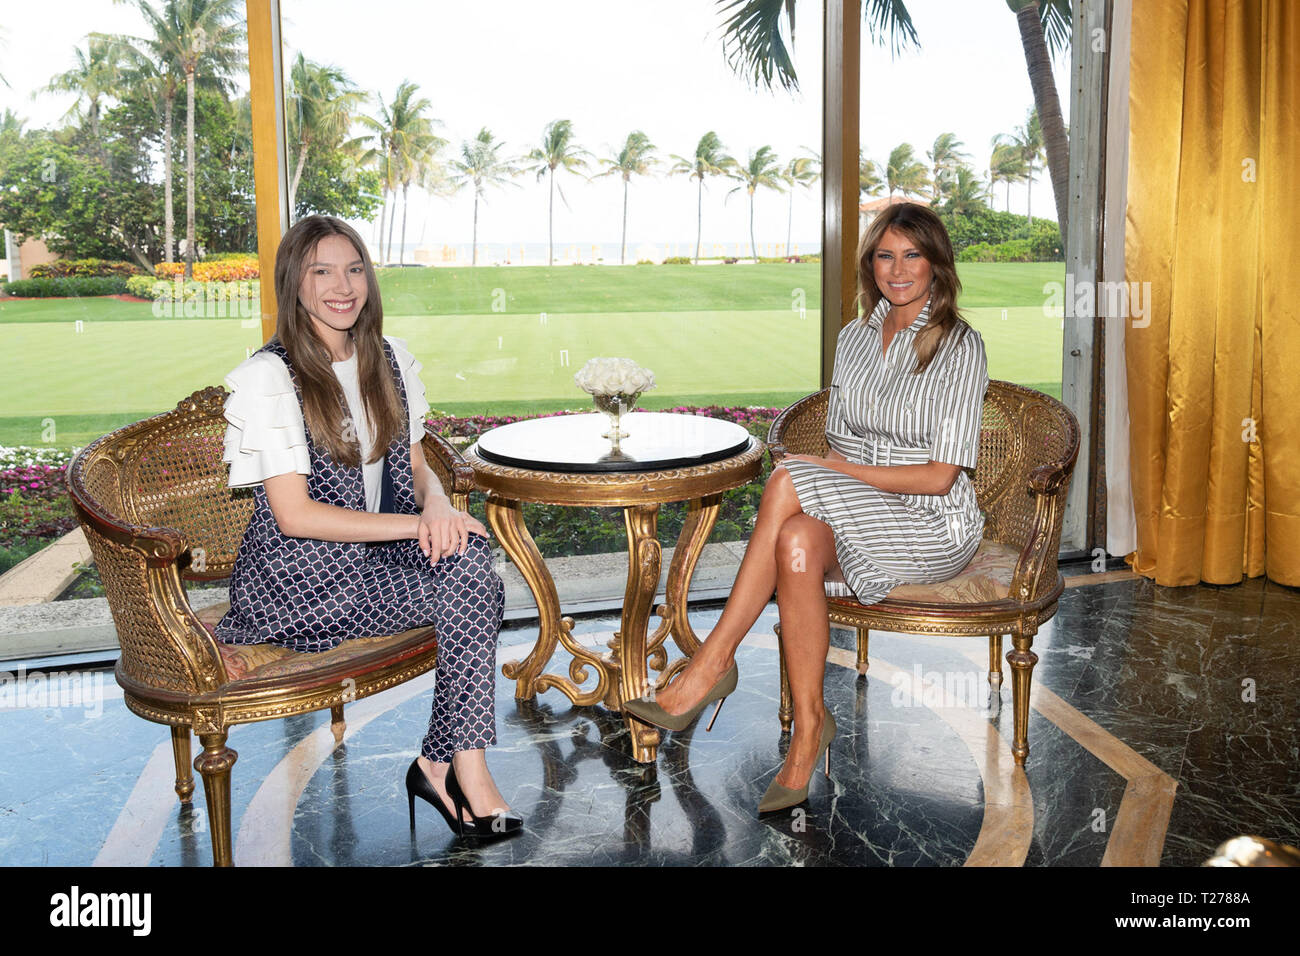 First Lady Melania Trump poses for a photo with Fabiana Rosales de Guaido, the First Lady of the Bolivarian Republic of Venezuela Thursday, March 28, 2019, at Mar-a-Lago in Palm Beach, Fla.  People:  First Lady Melania Trump, Fabiana Rosales de Guaido, the First Lady of the Bolivarian Republic of Venezuela - Stock Image